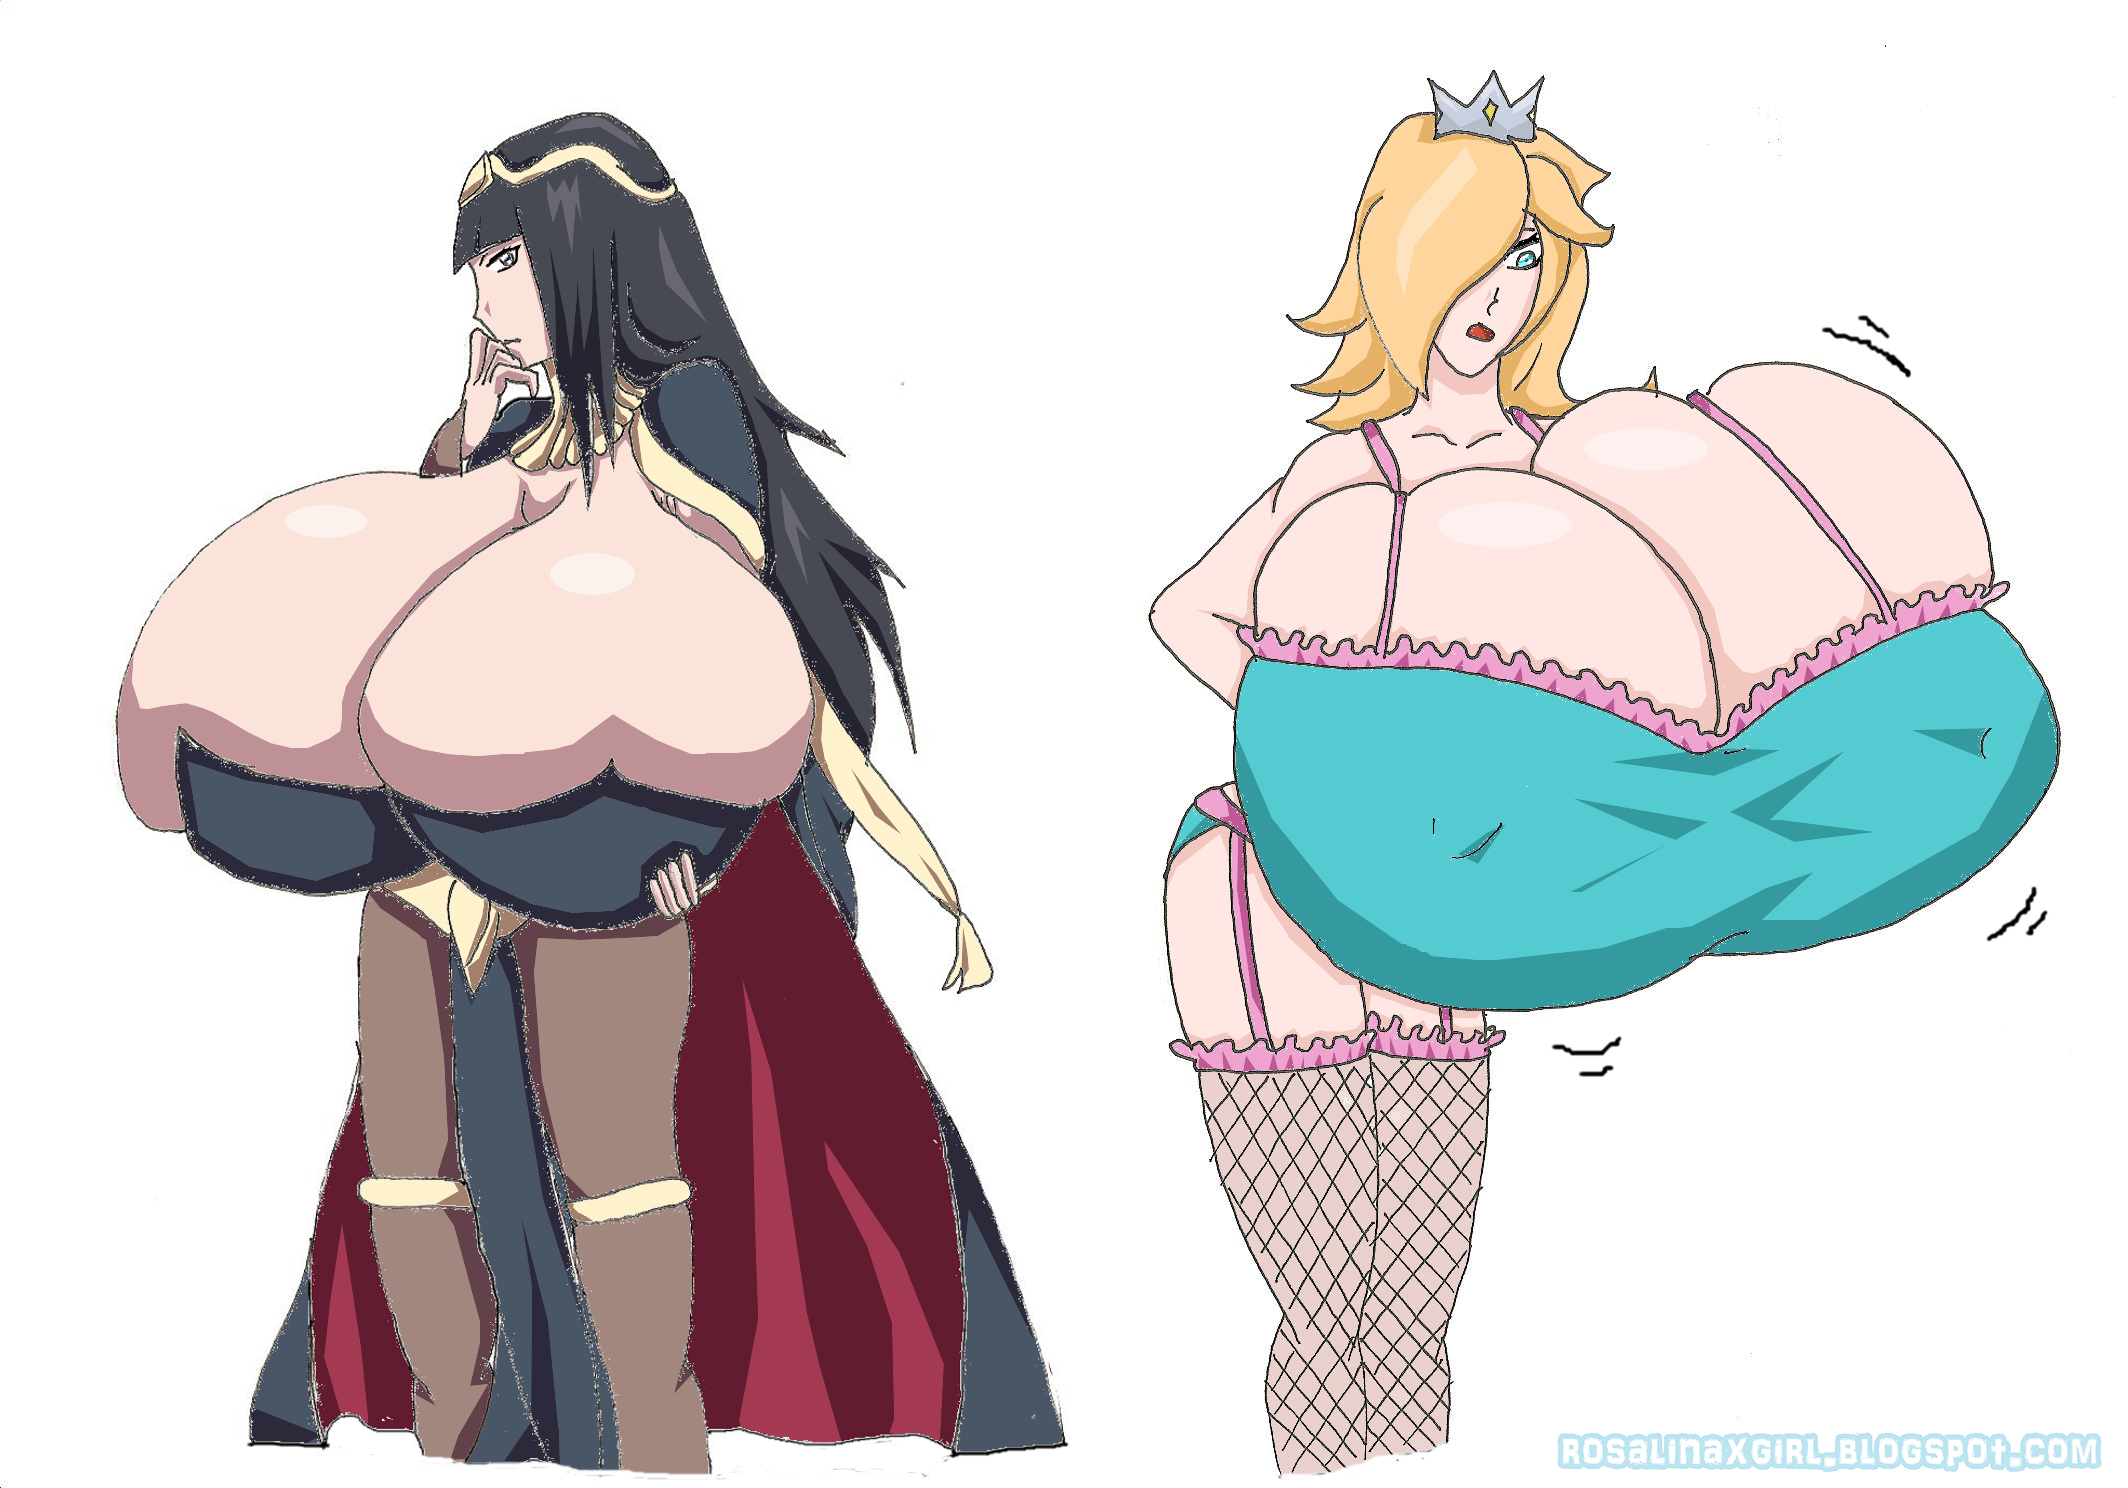 Rosalina Nintendo Tharja Fire Emblem big breast busty ecchi